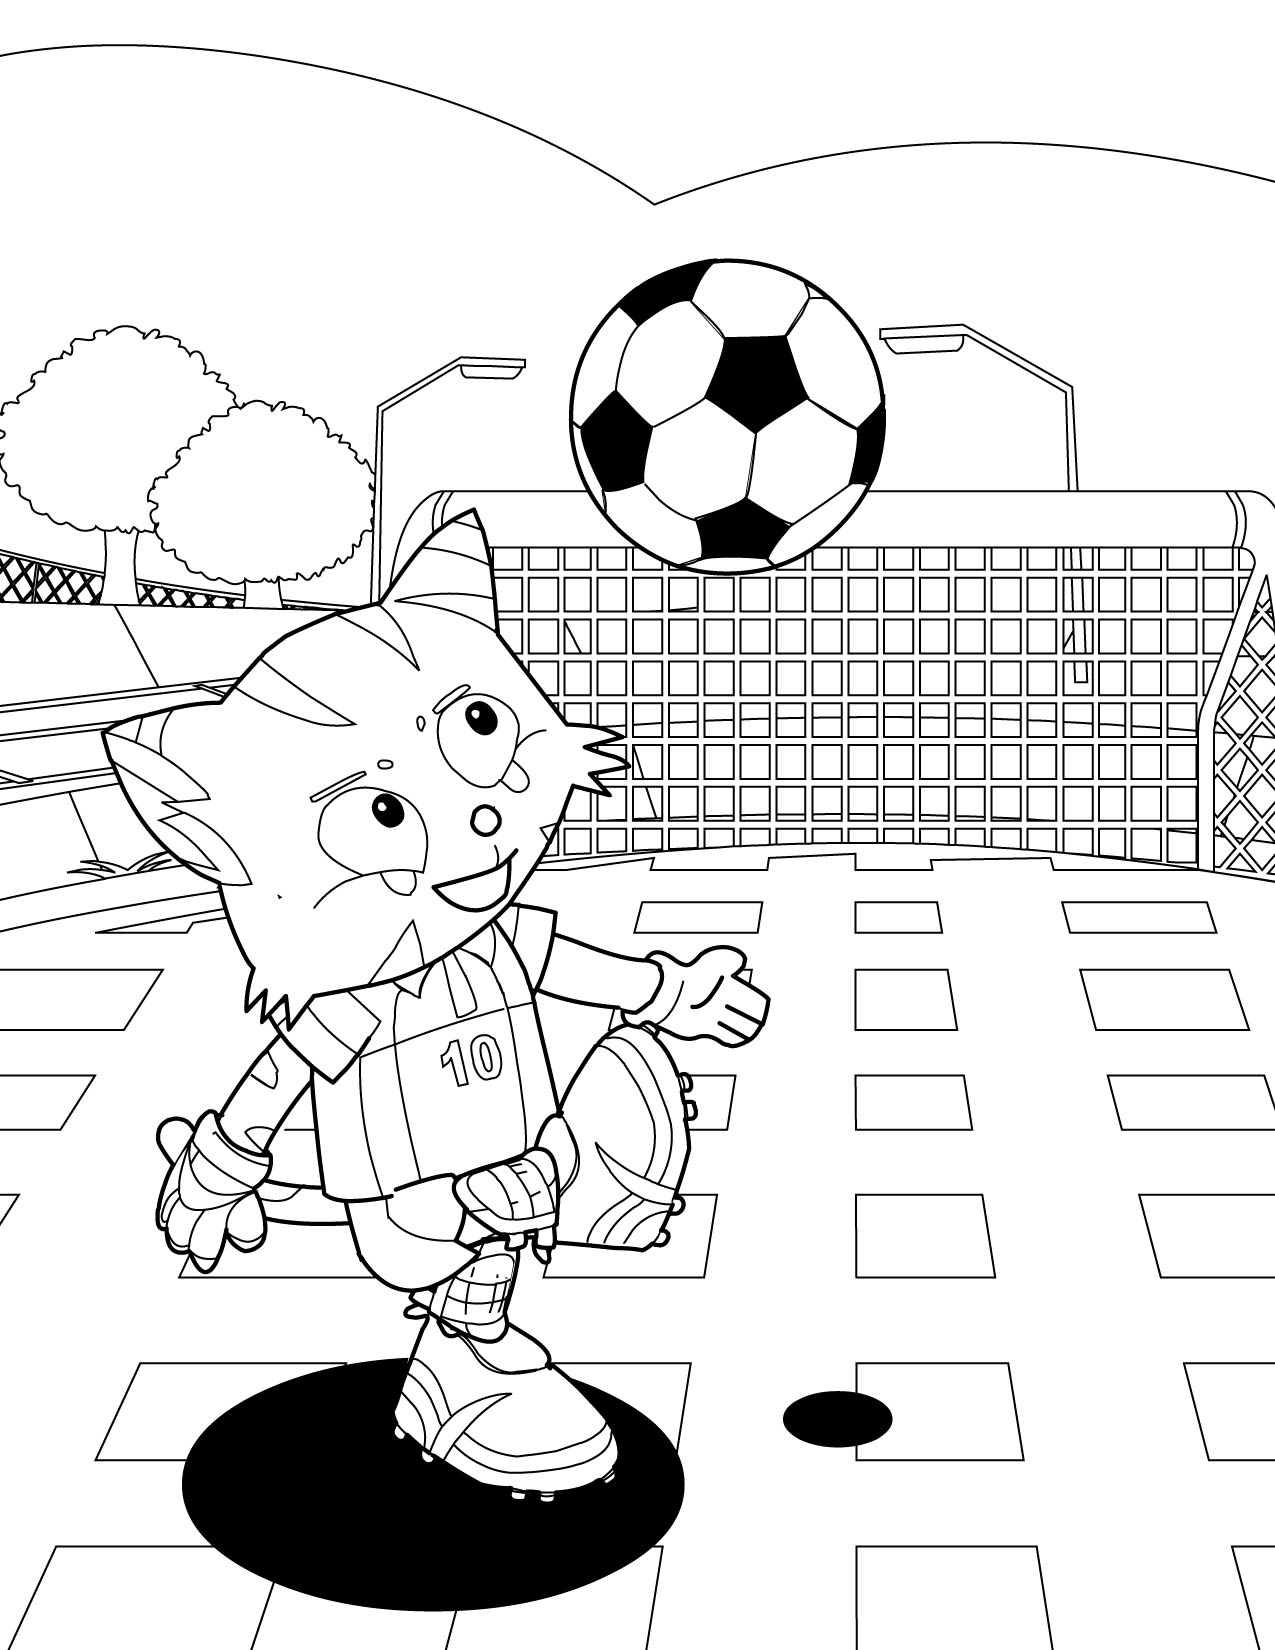 Soccer Coloring Pages 4 Coloring